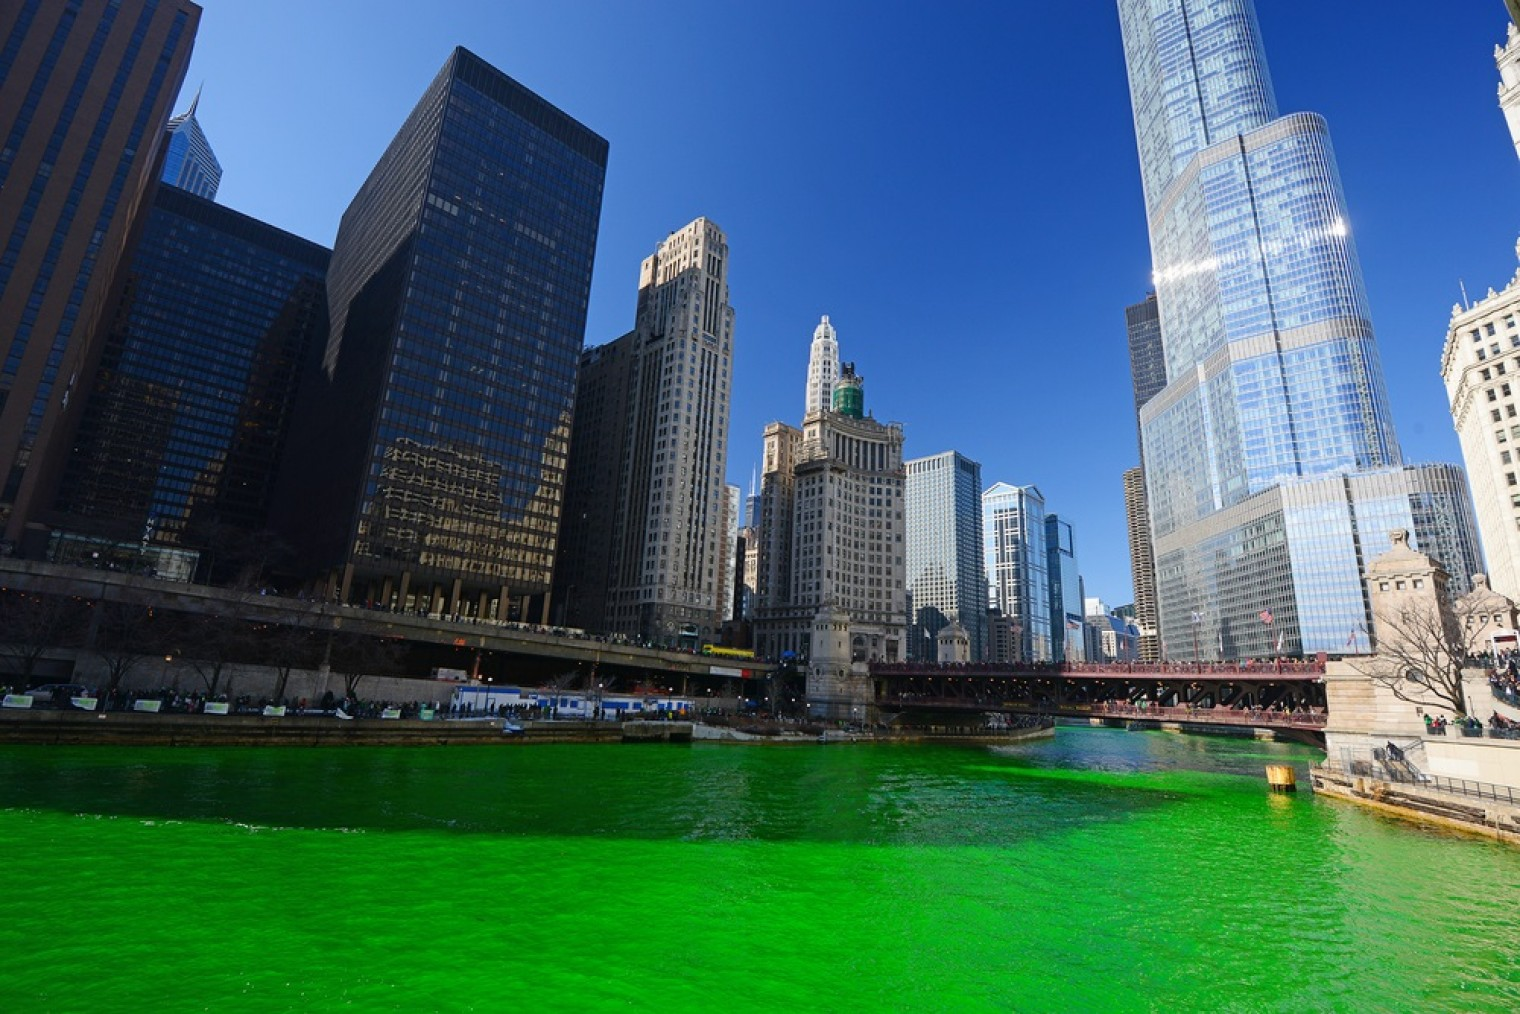 Top 5 places to celebrate St. Patrick's Day